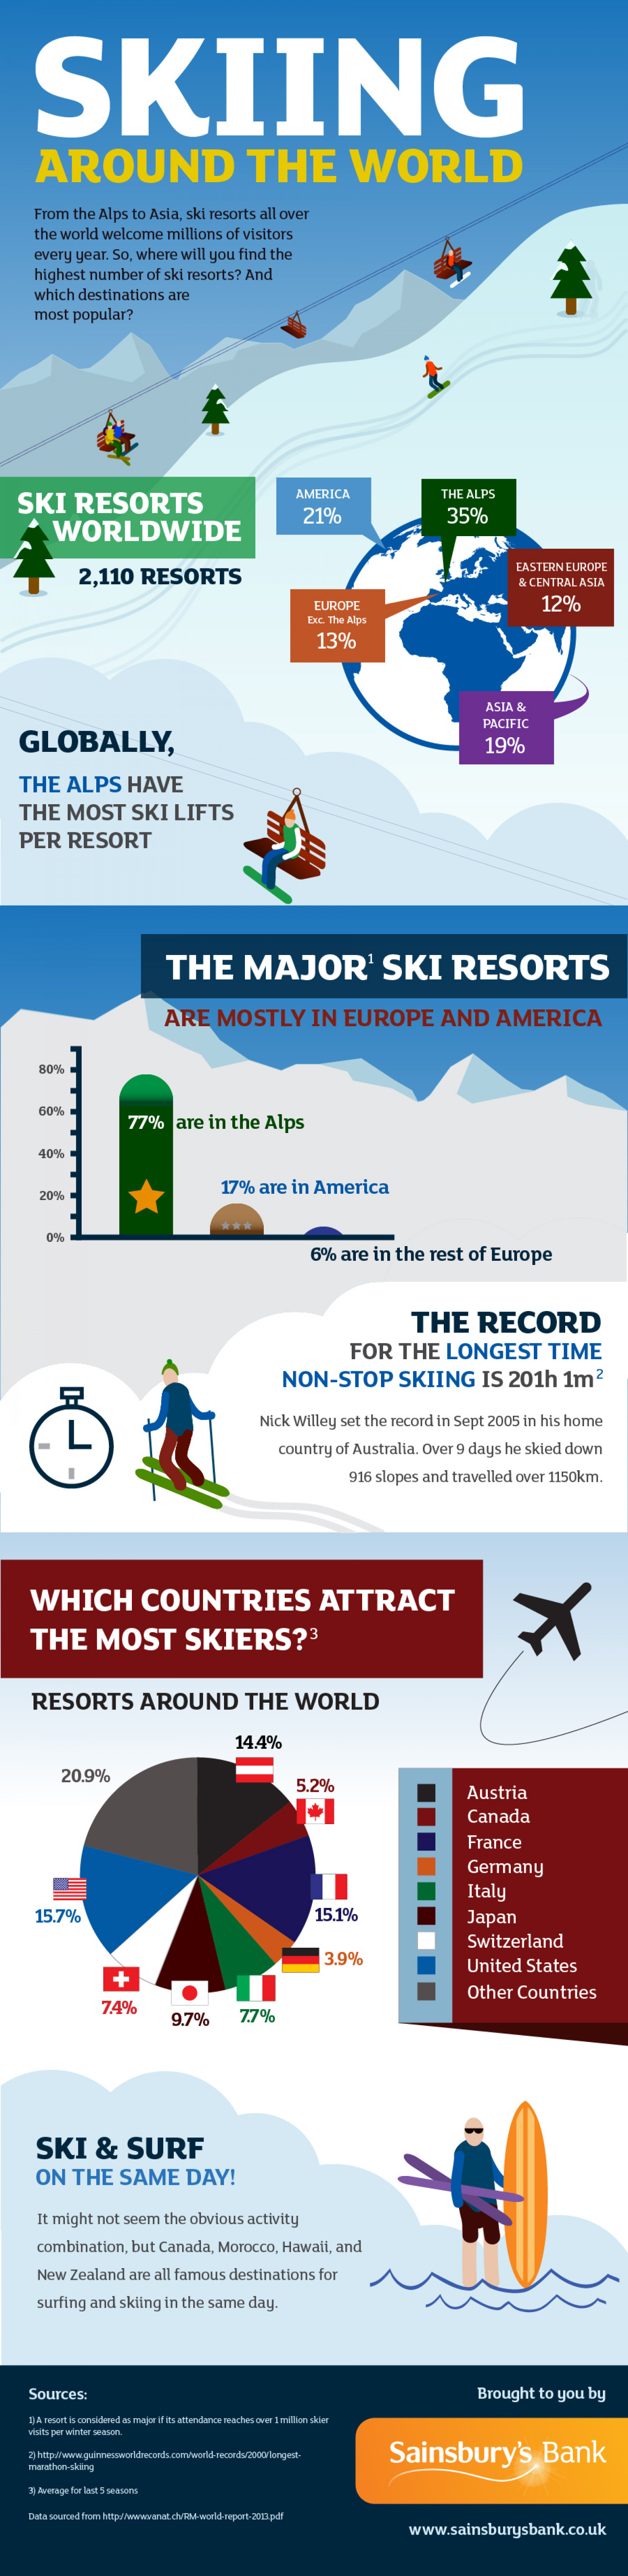 Skiing around the world Infographic